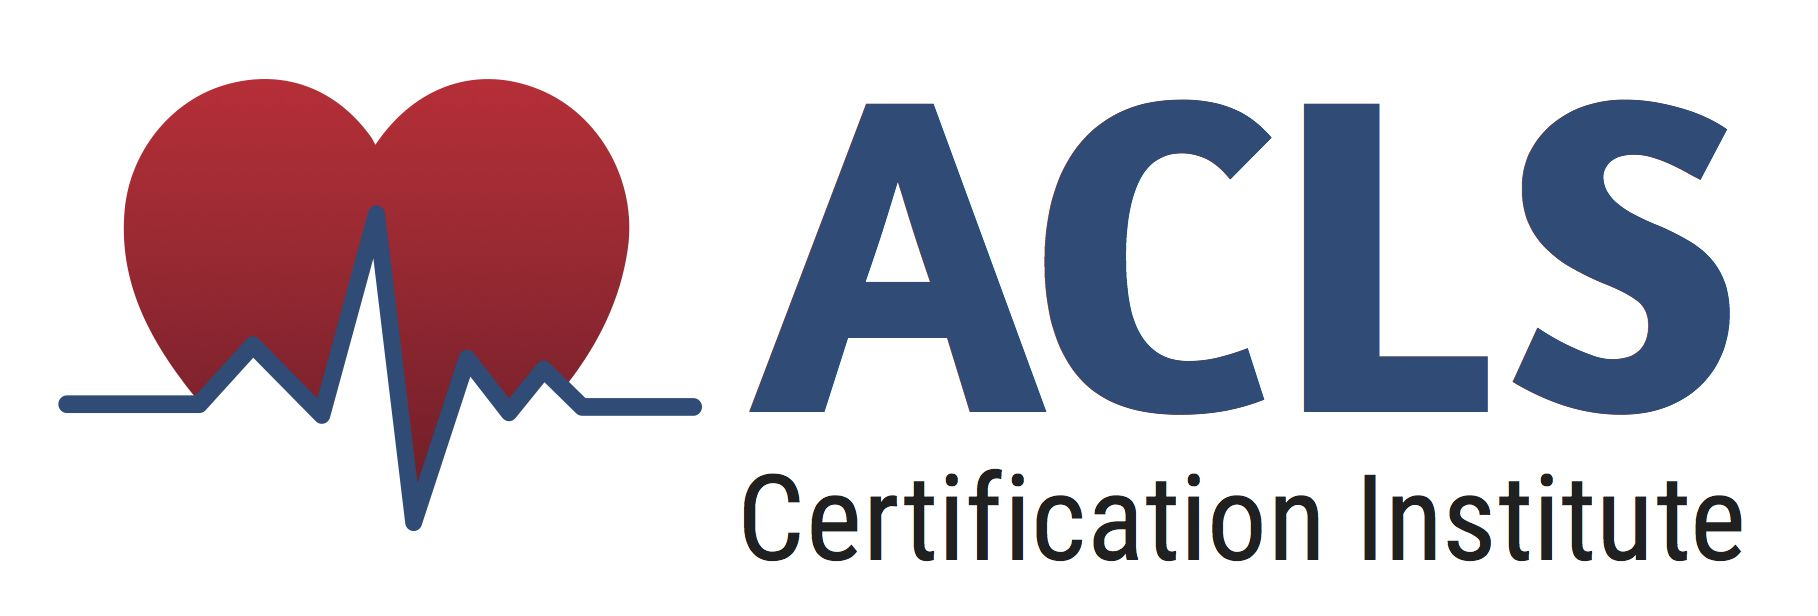 Acls Certification Institute Pressroom On Prlog Aclscertification